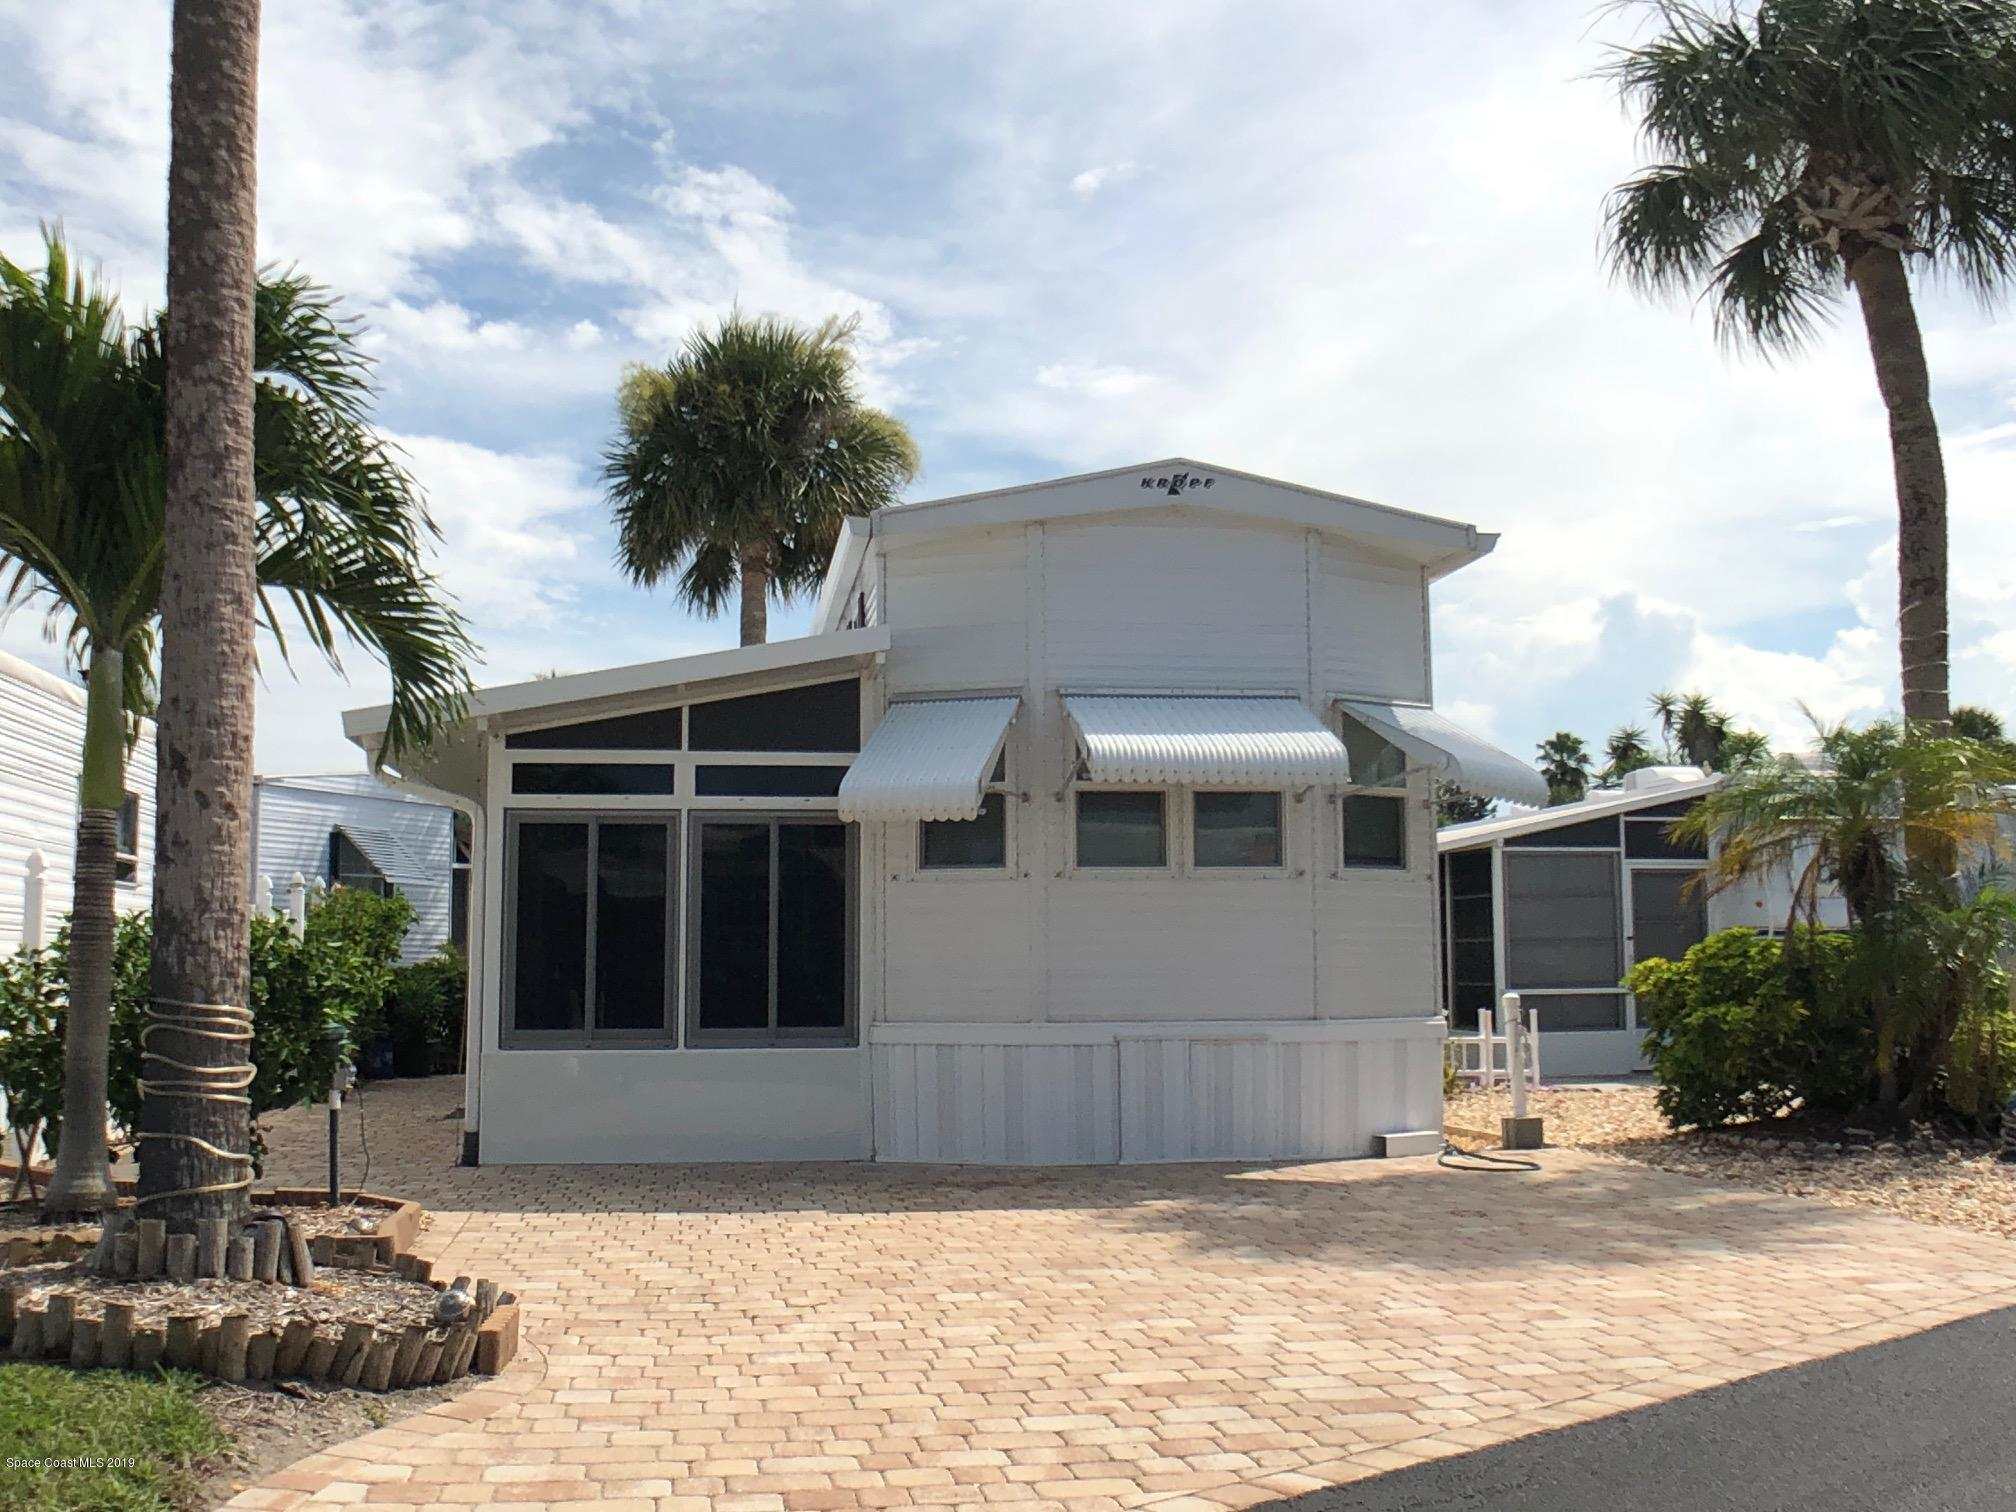 Property for Sale at 771 Galaxy Melbourne Beach, Florida 32951 United States